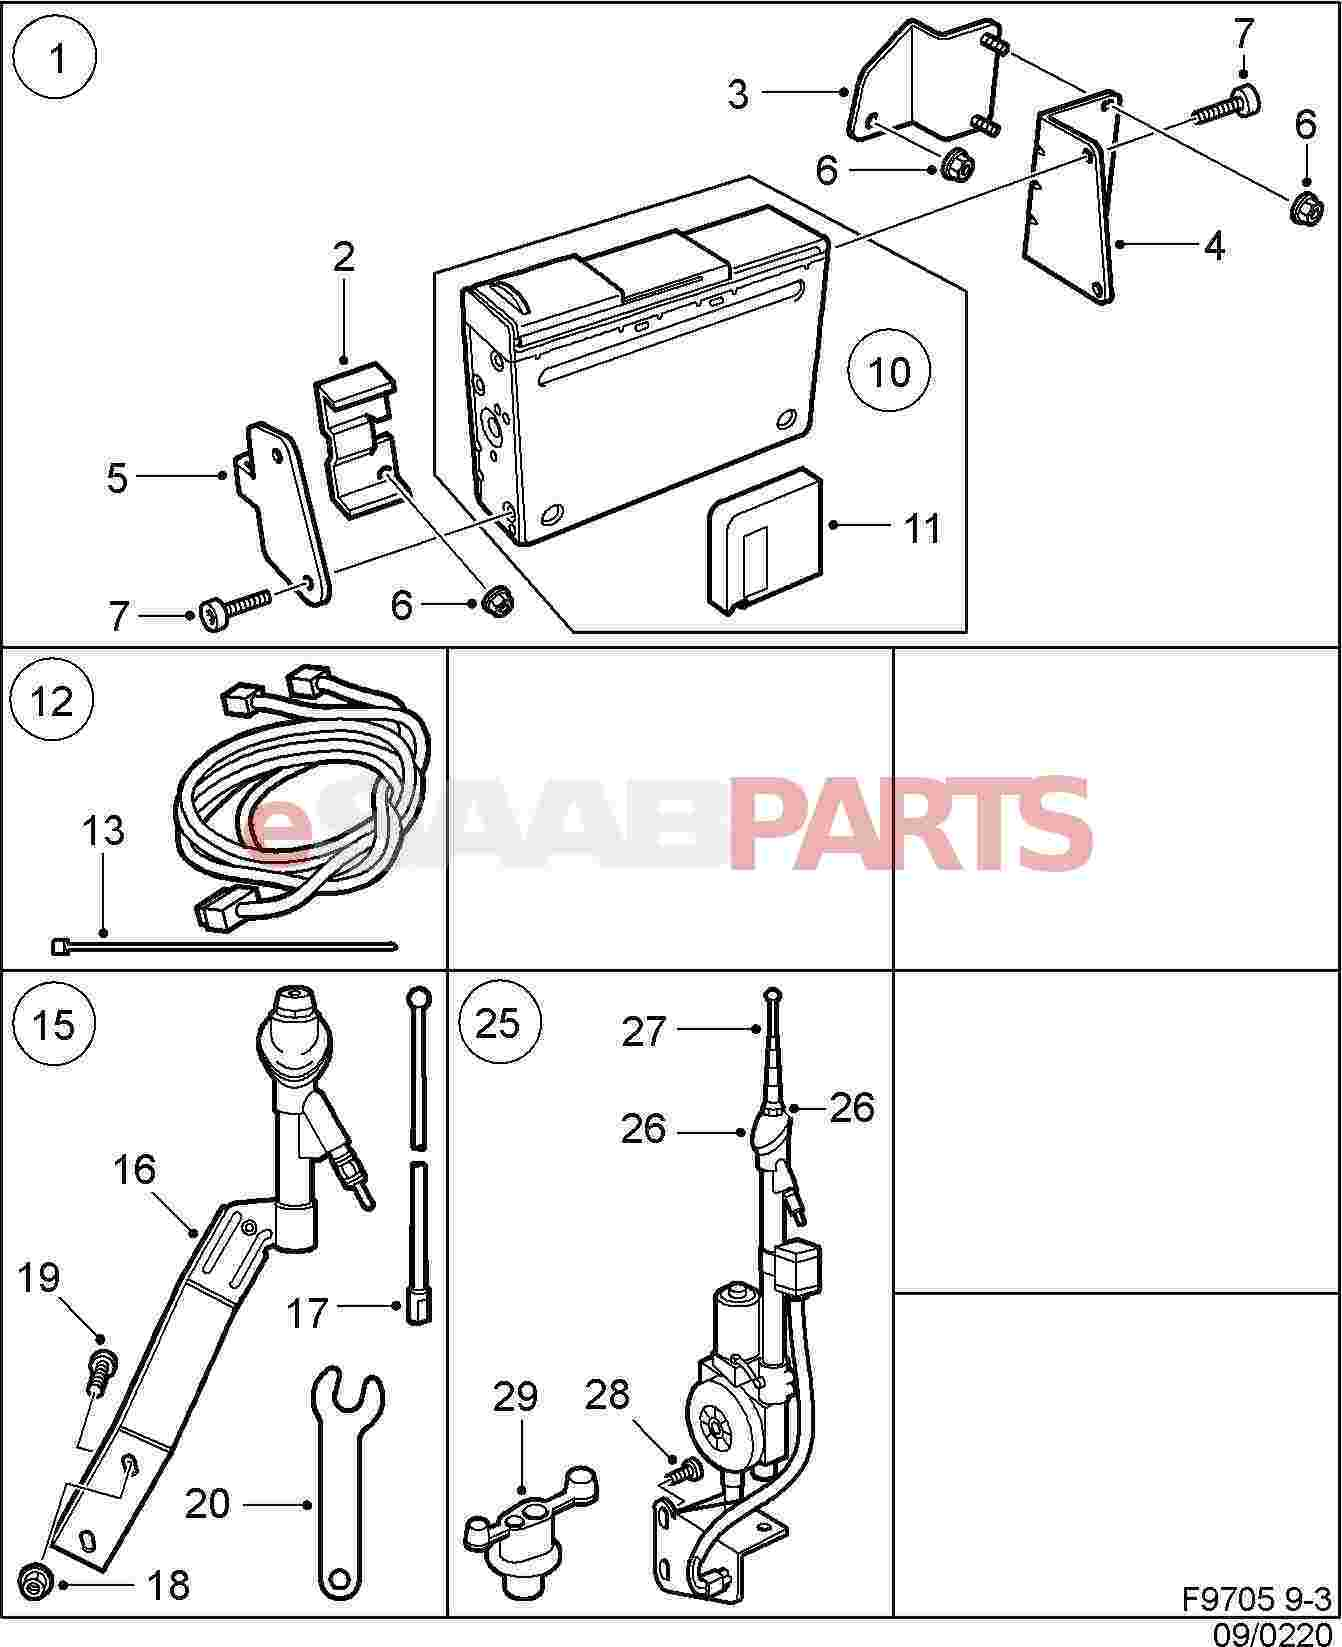 [DIAGRAM] 2003 Saab 9 3 Convertible Wiring Diagram FULL